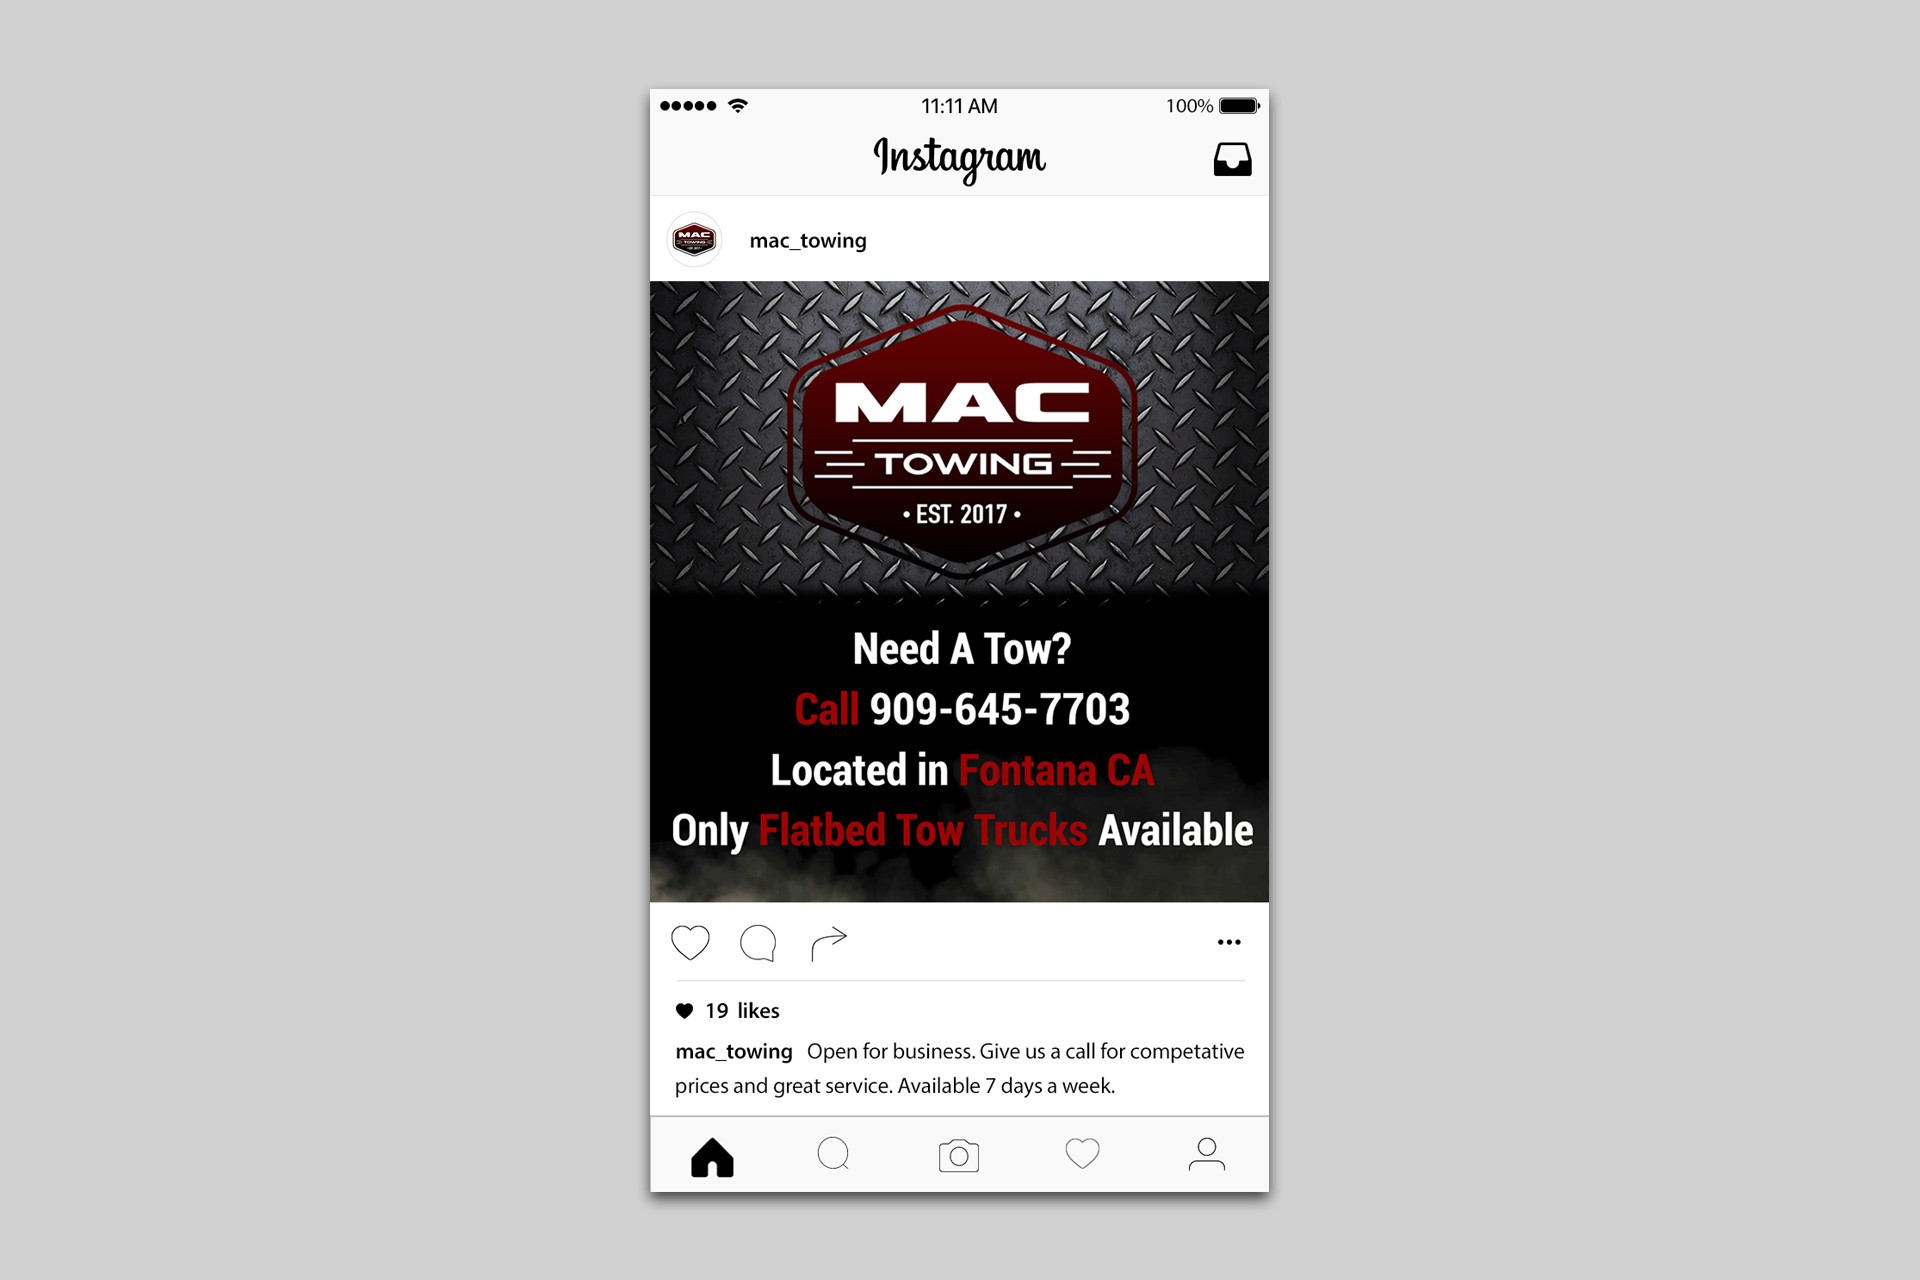 Mac Towing Instagram promorional post